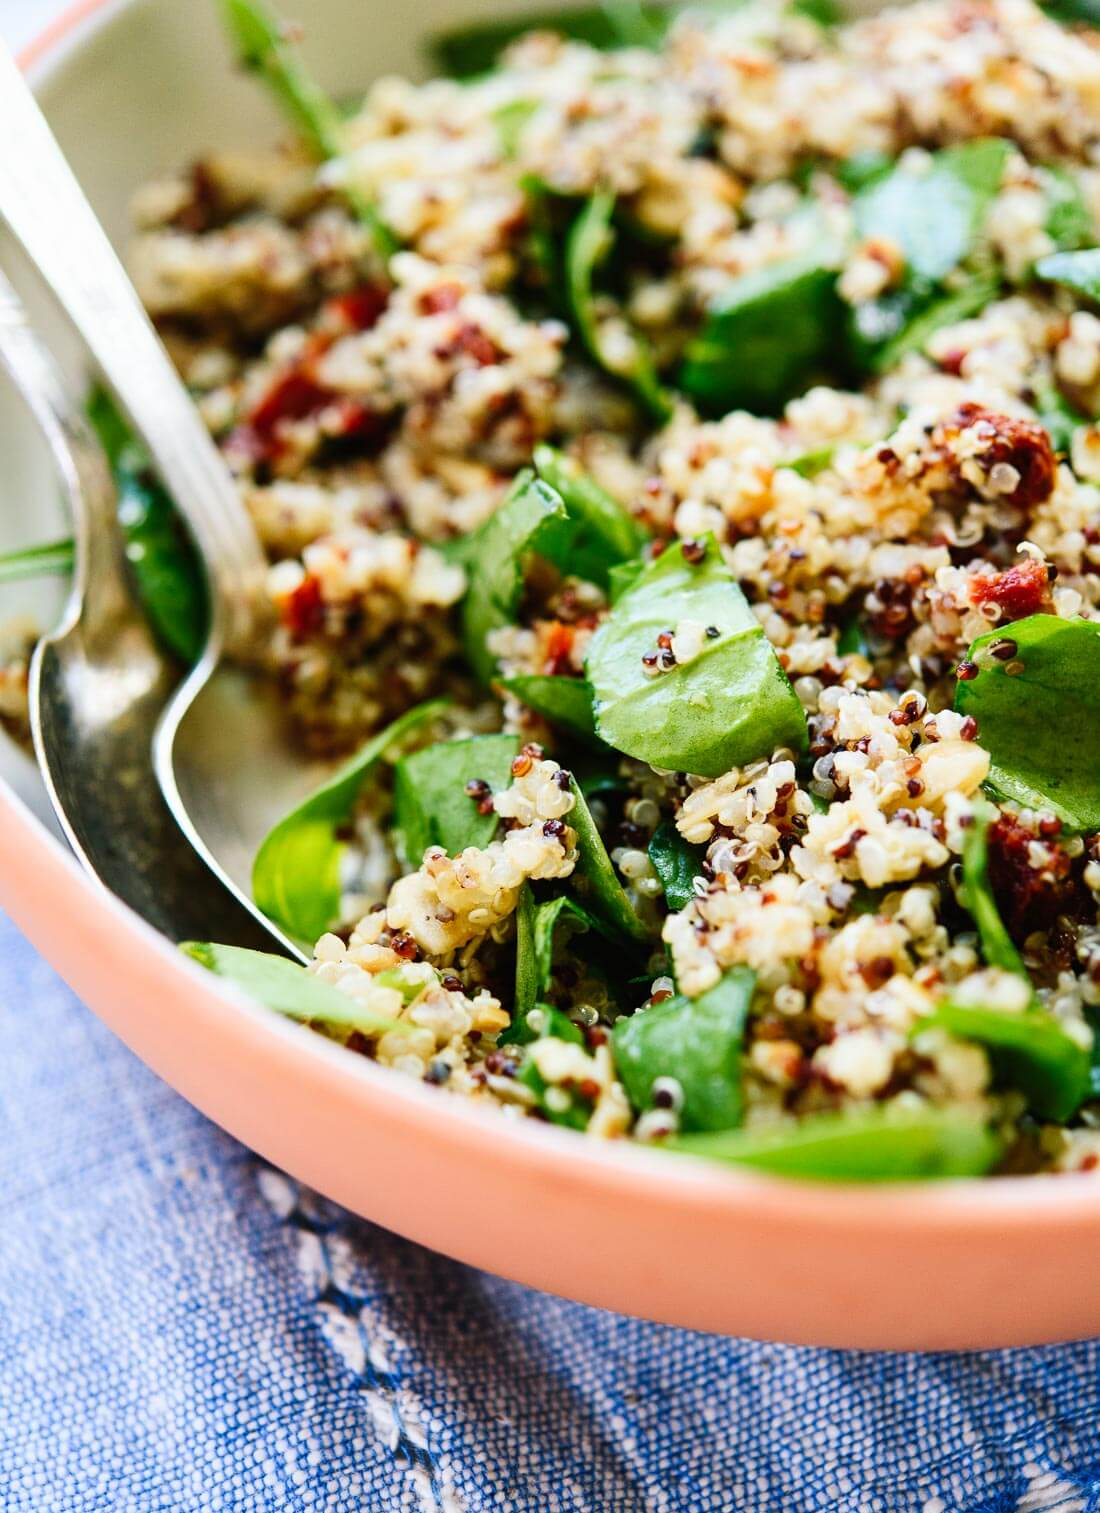 Simple quinoa salad with spinach, sun-dried tomatoes, toasted almonds and a zippy lemon dressing! cookieandkate.com